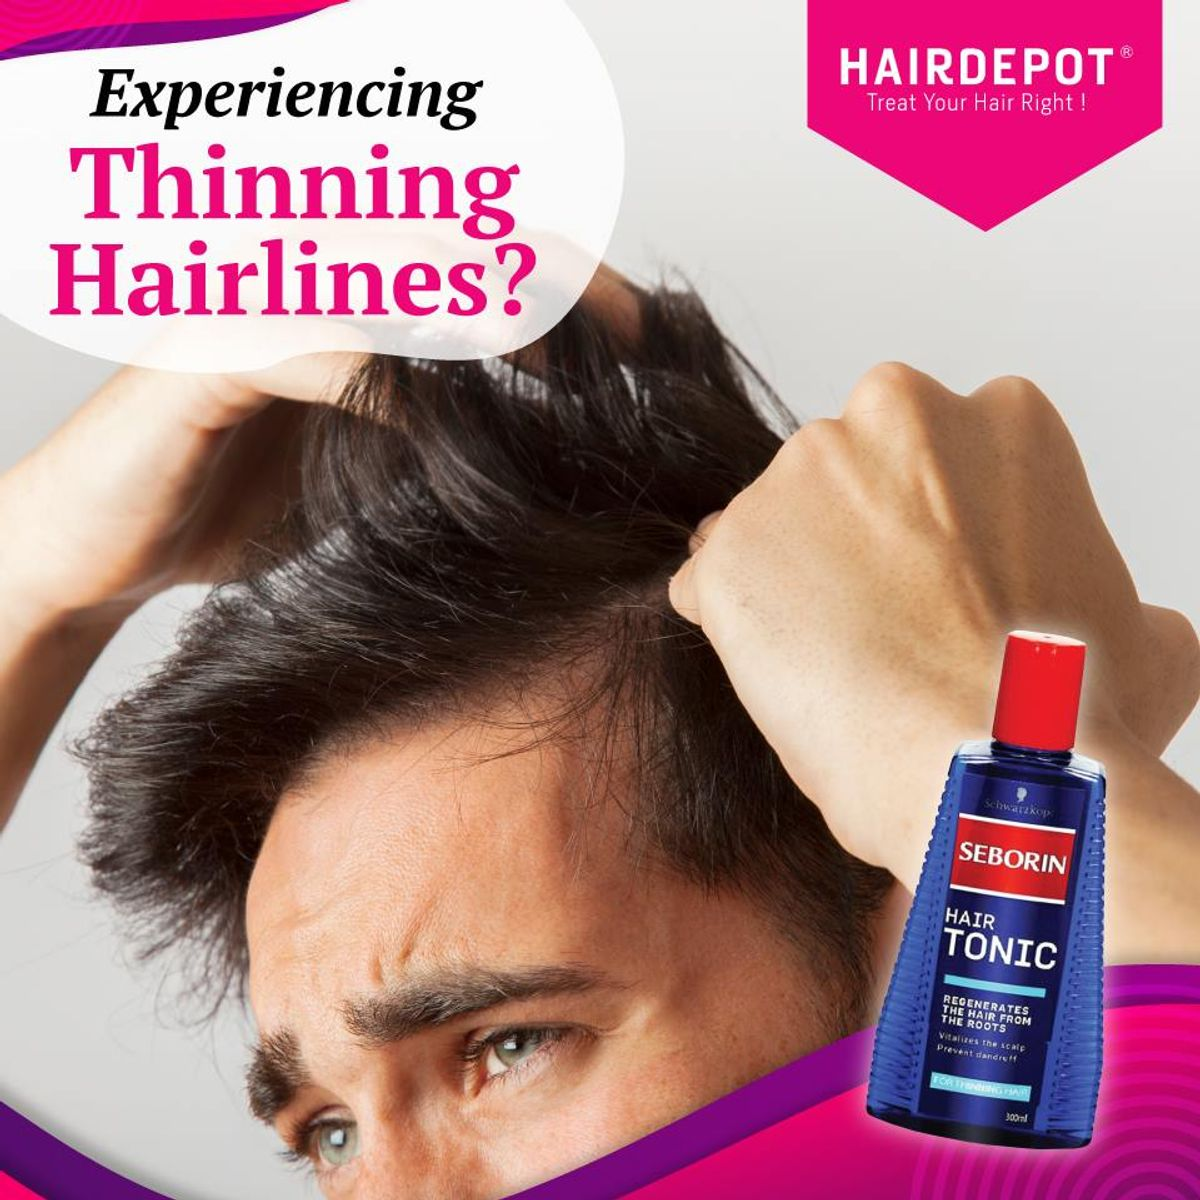 Experiencing Thinning Hairlines?